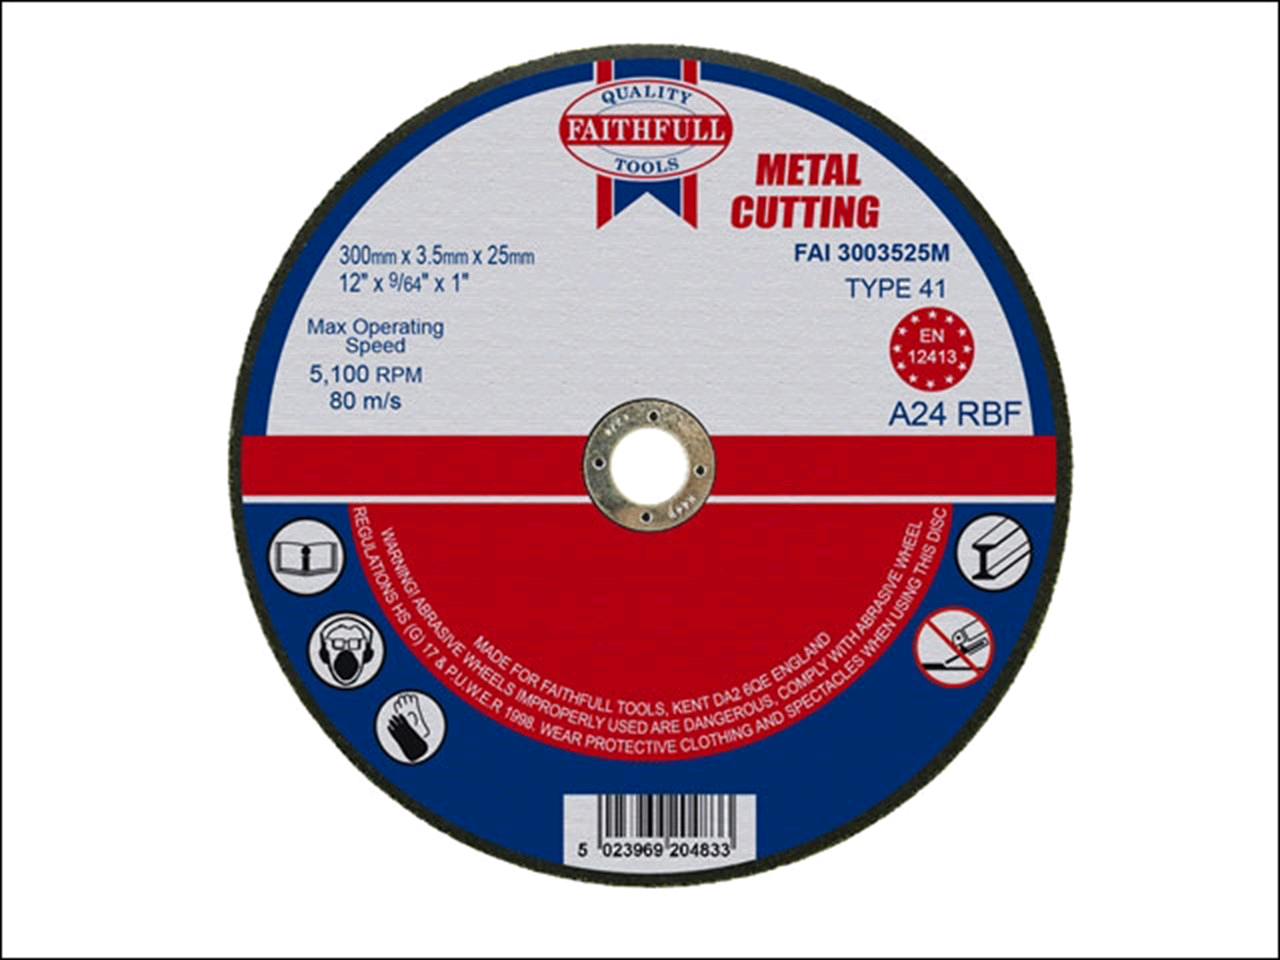 Faithfull Metal Cutting Disc 300 x 3.5 25mm